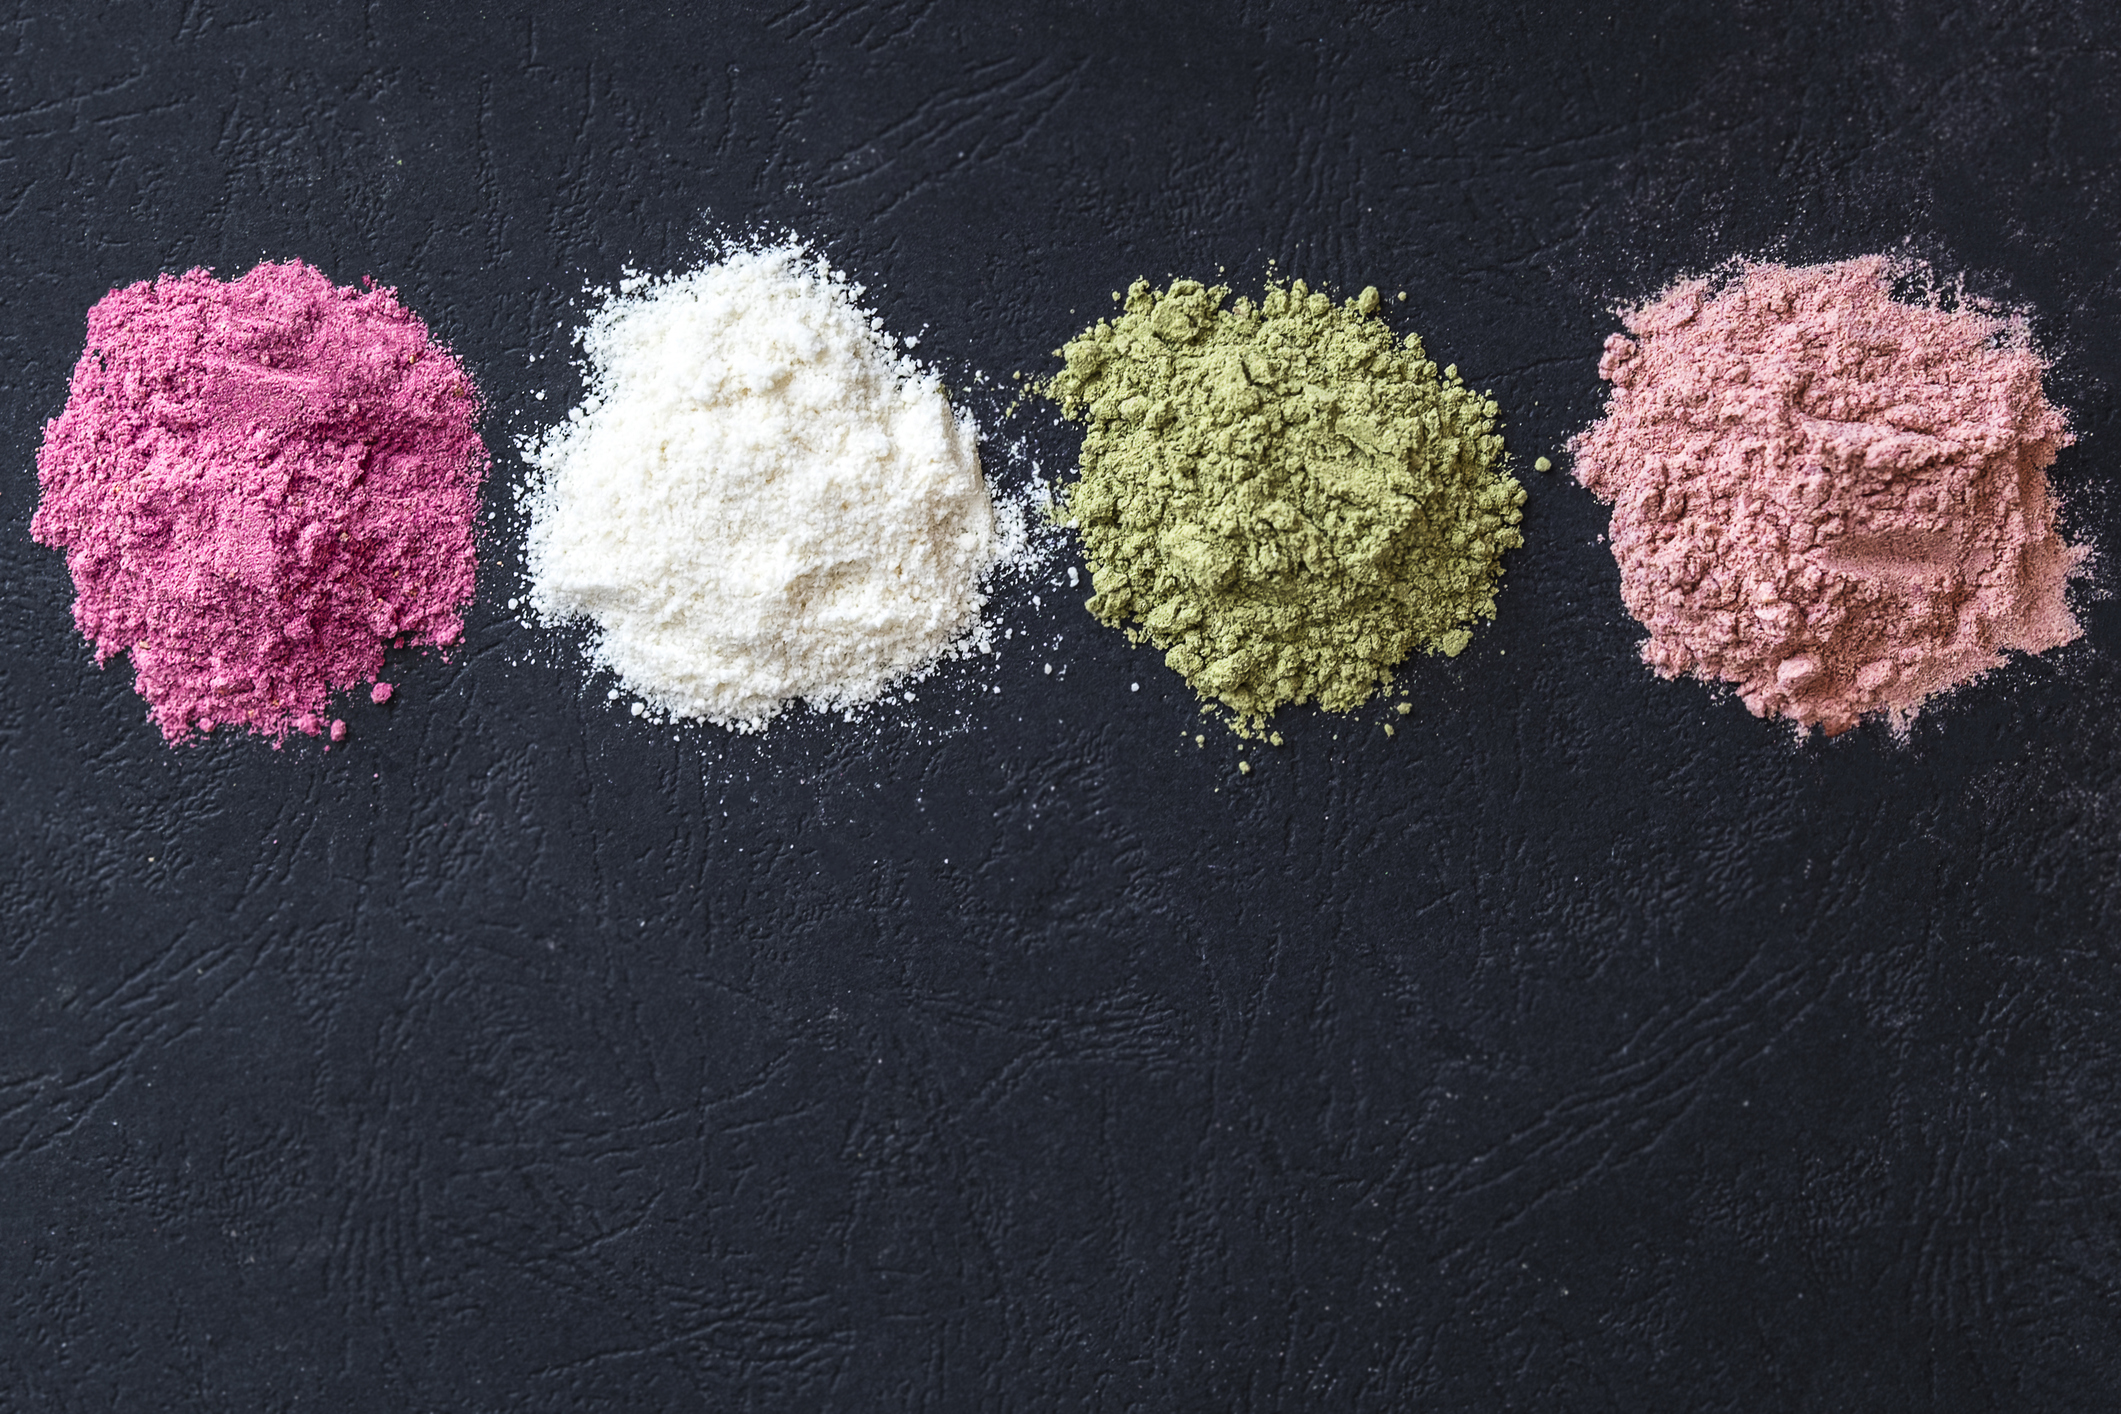 Colourful powders Volumetric Powder Fillers